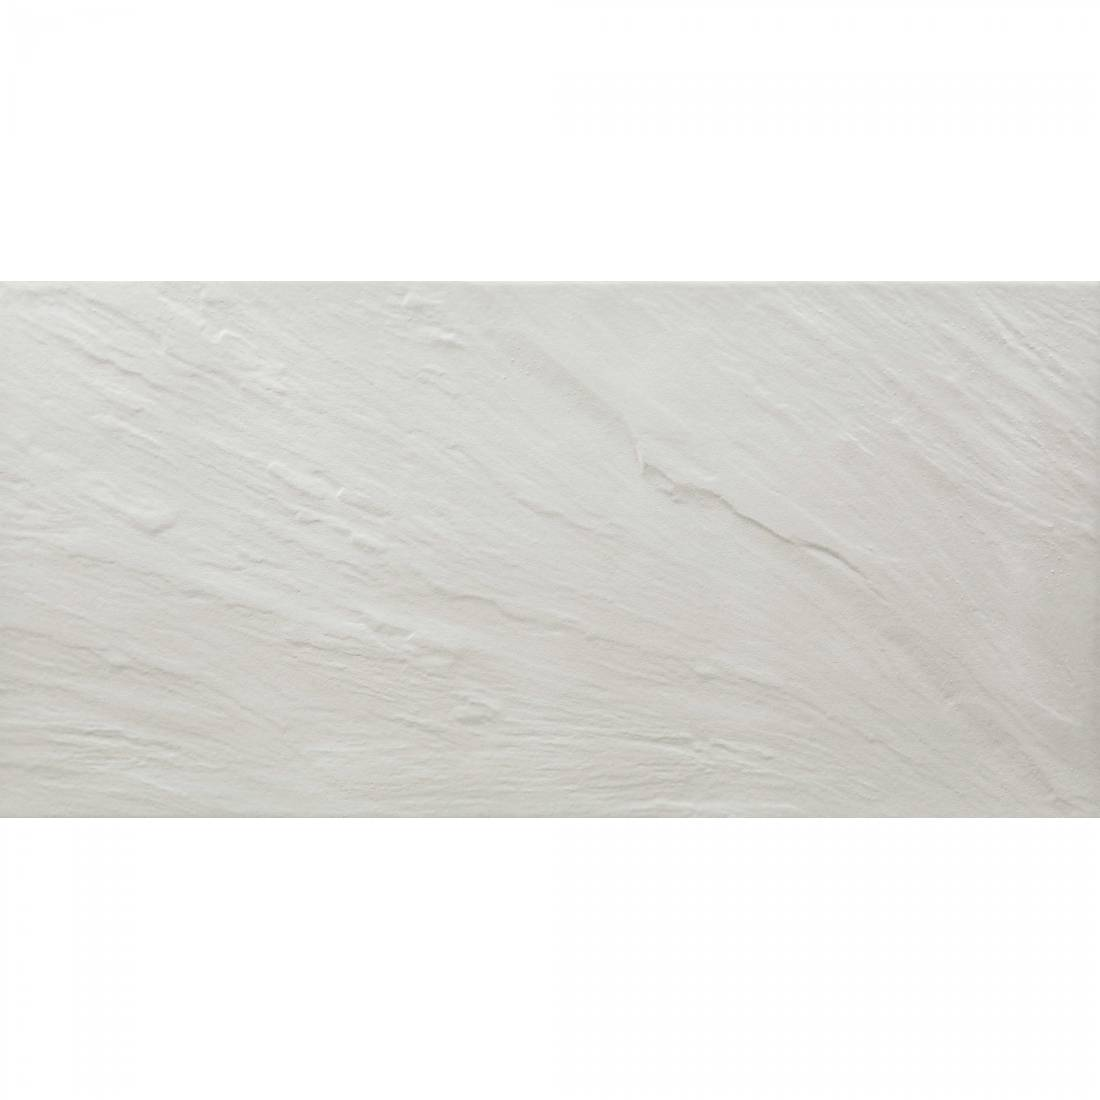 Pizzara 30x60 Satin White Matt 1